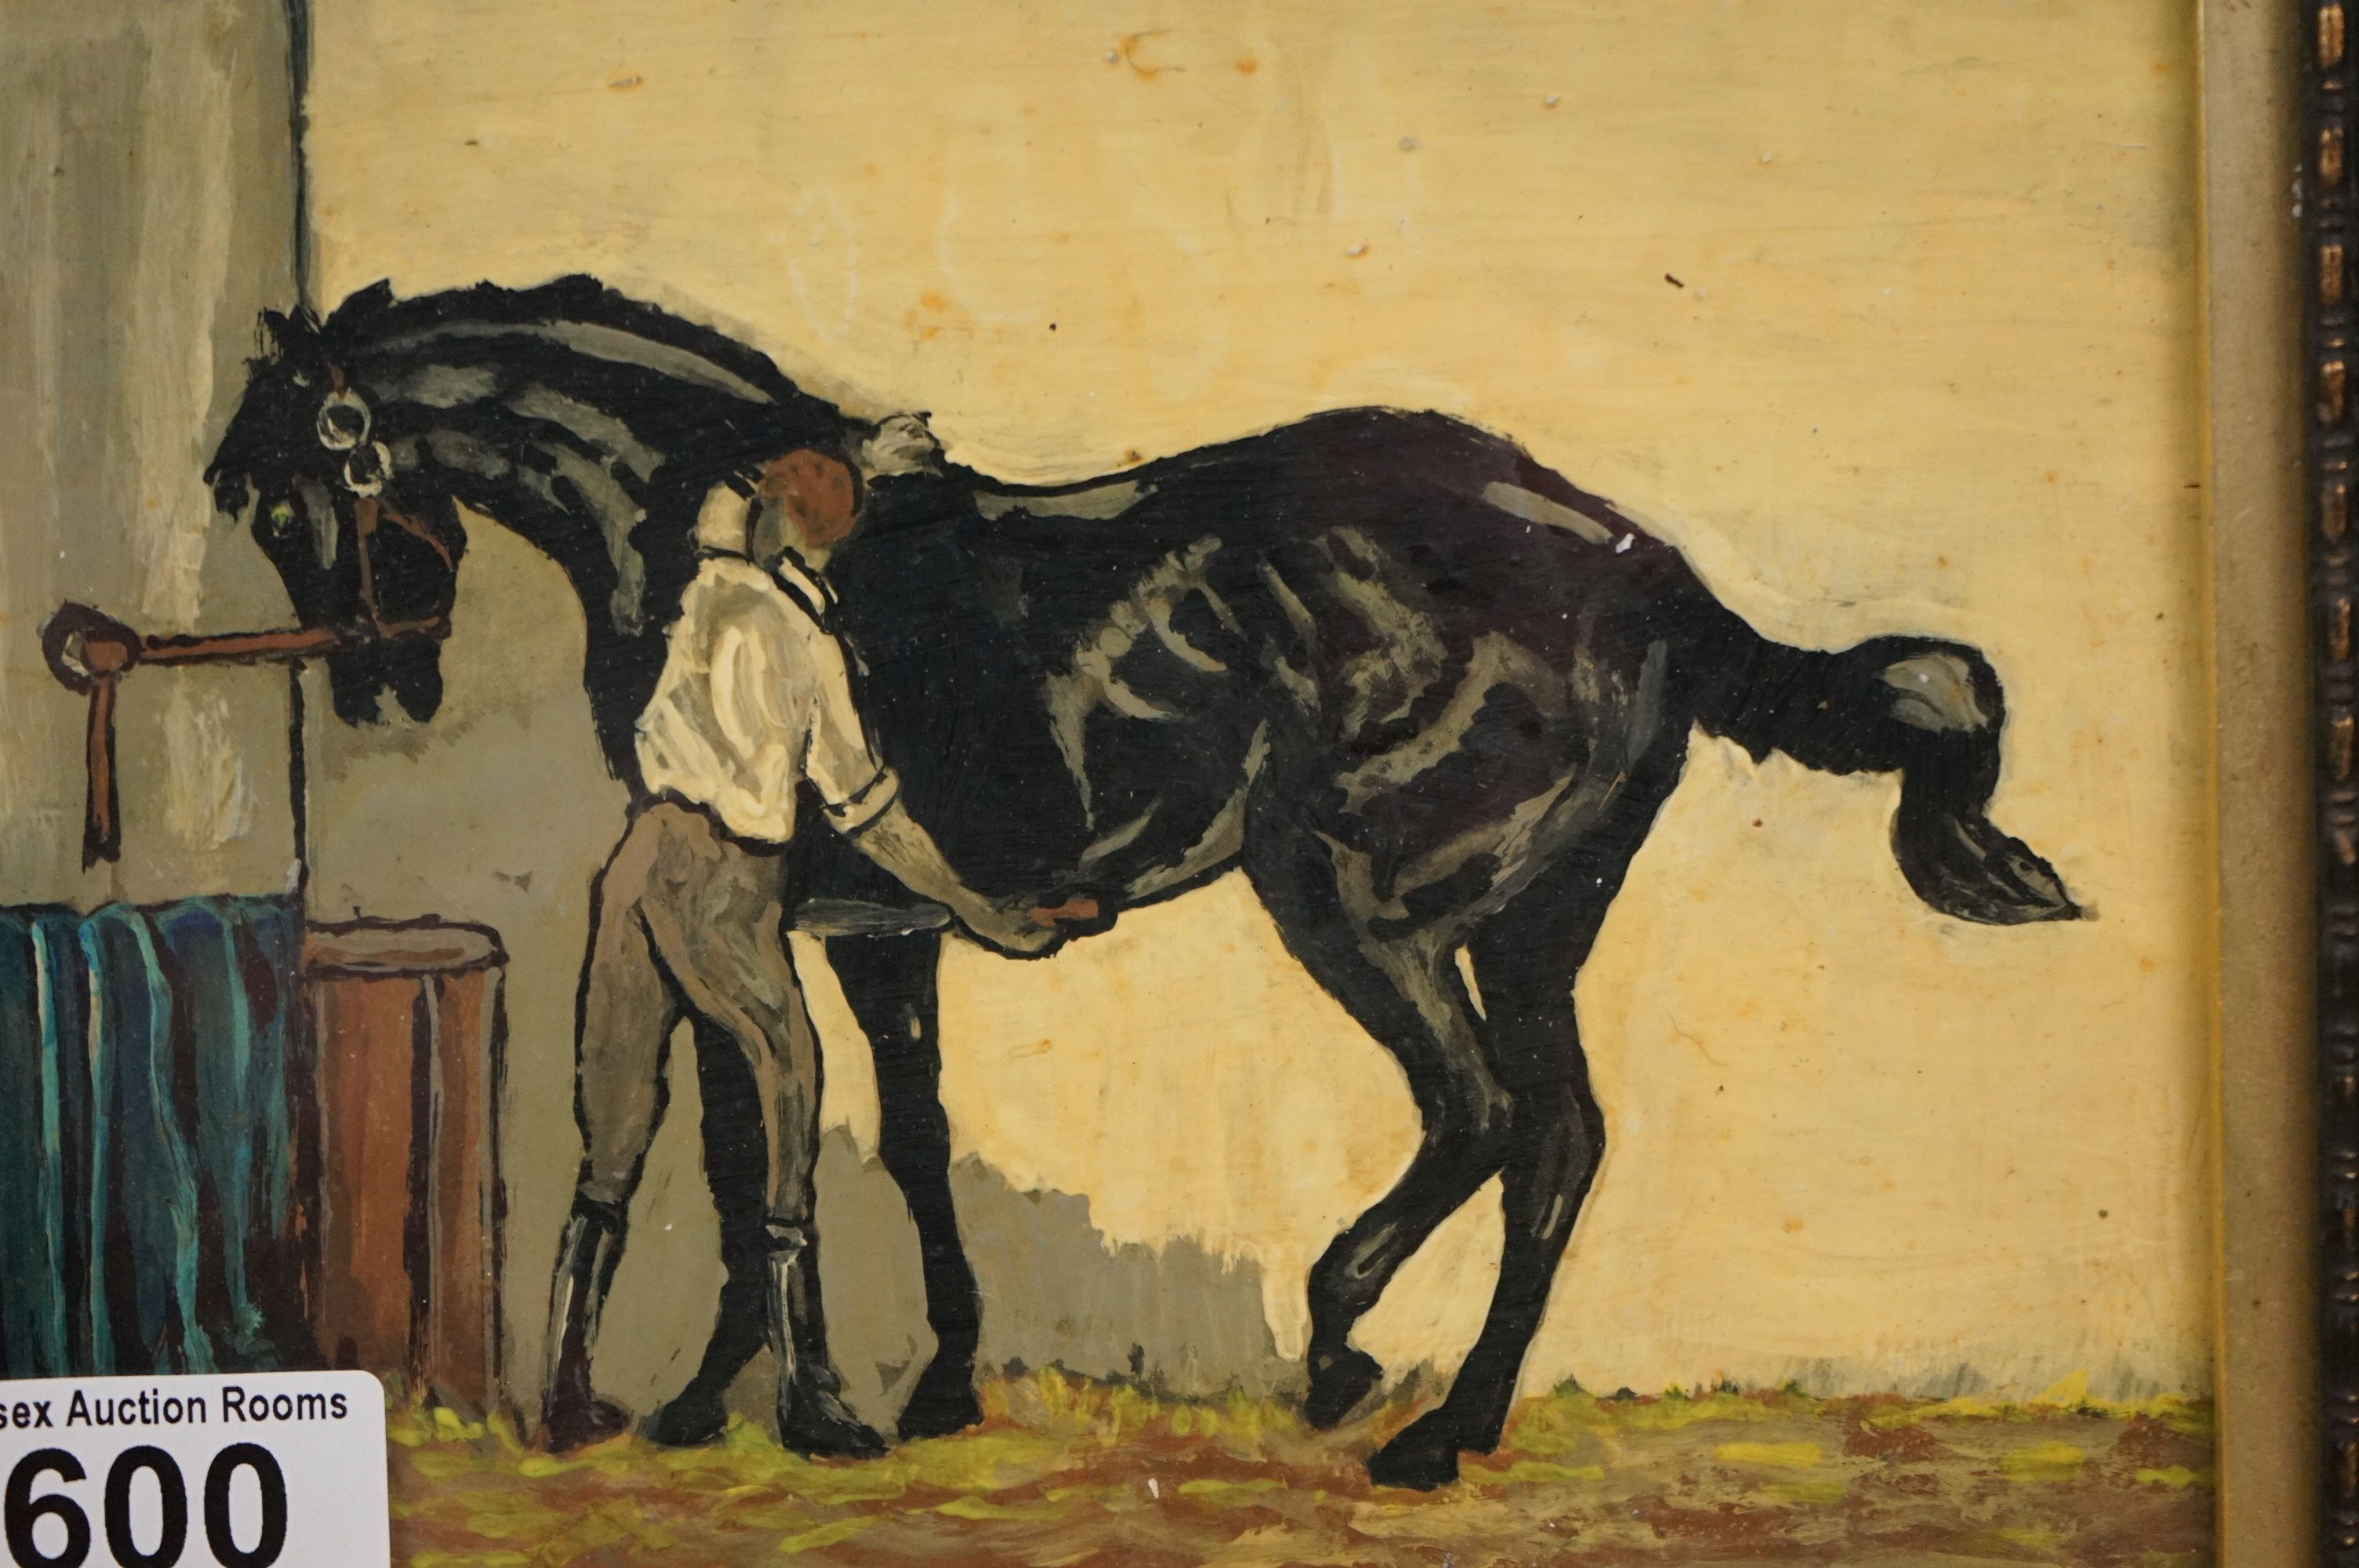 Oil painting of a racehorse and groom - Image 2 of 3